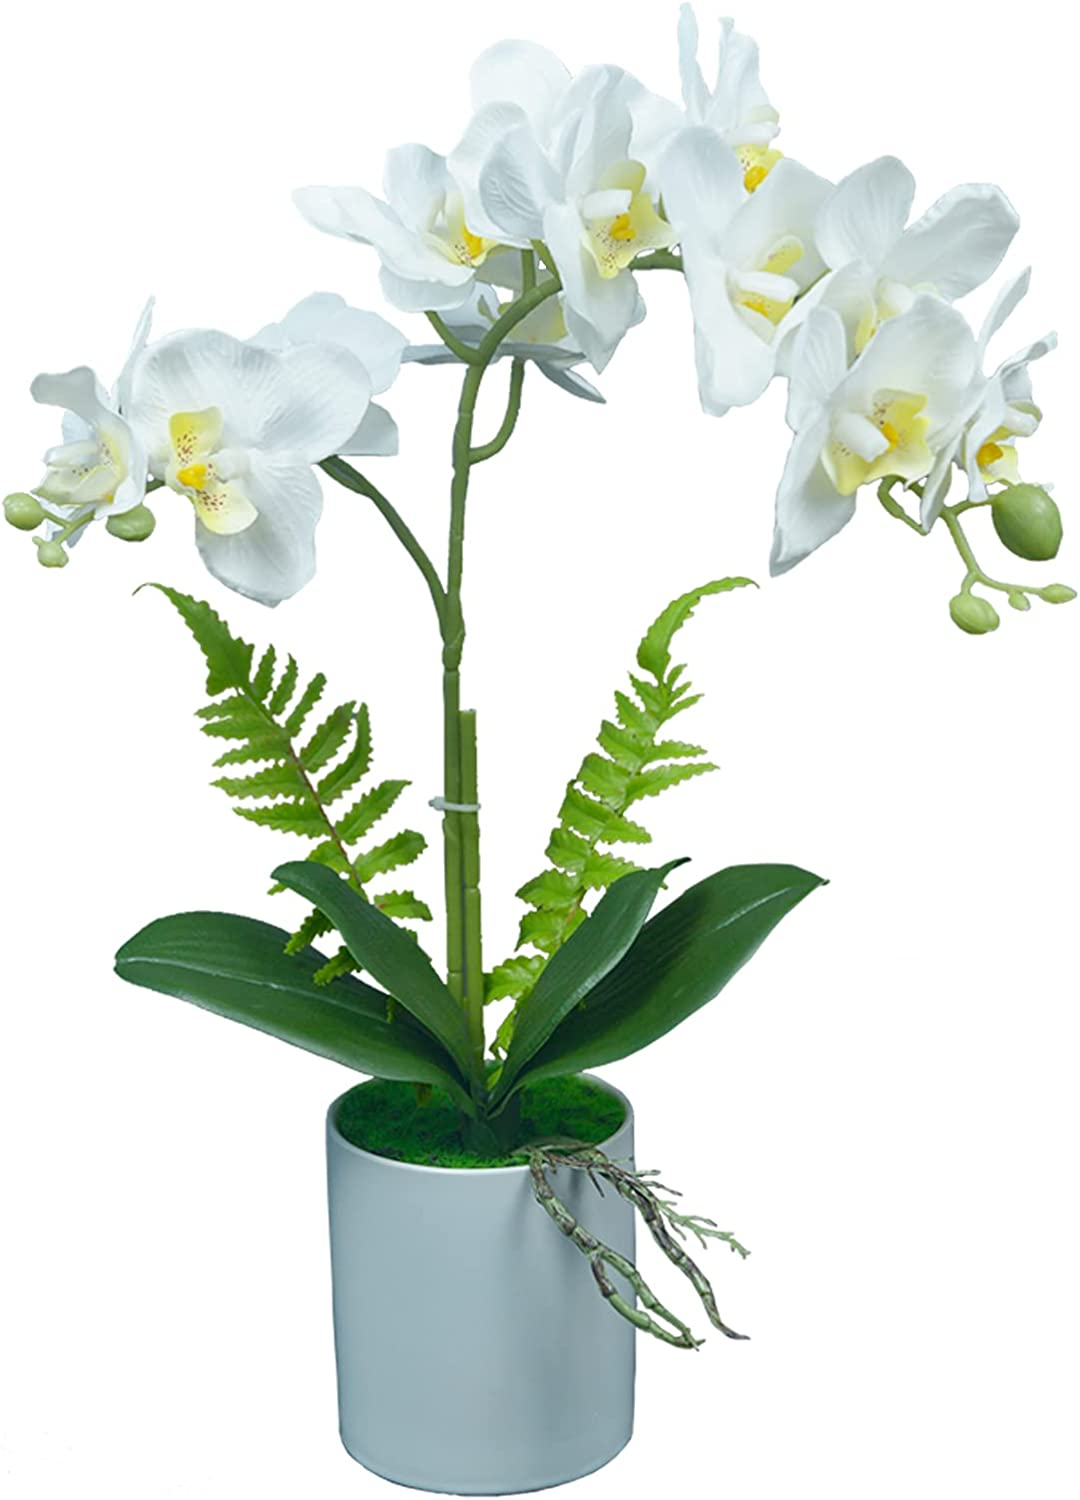 Artificial Silk Orchid Flowers Arrangement Max 73% OFF Raleigh Mall Or Vase Fake in Faux